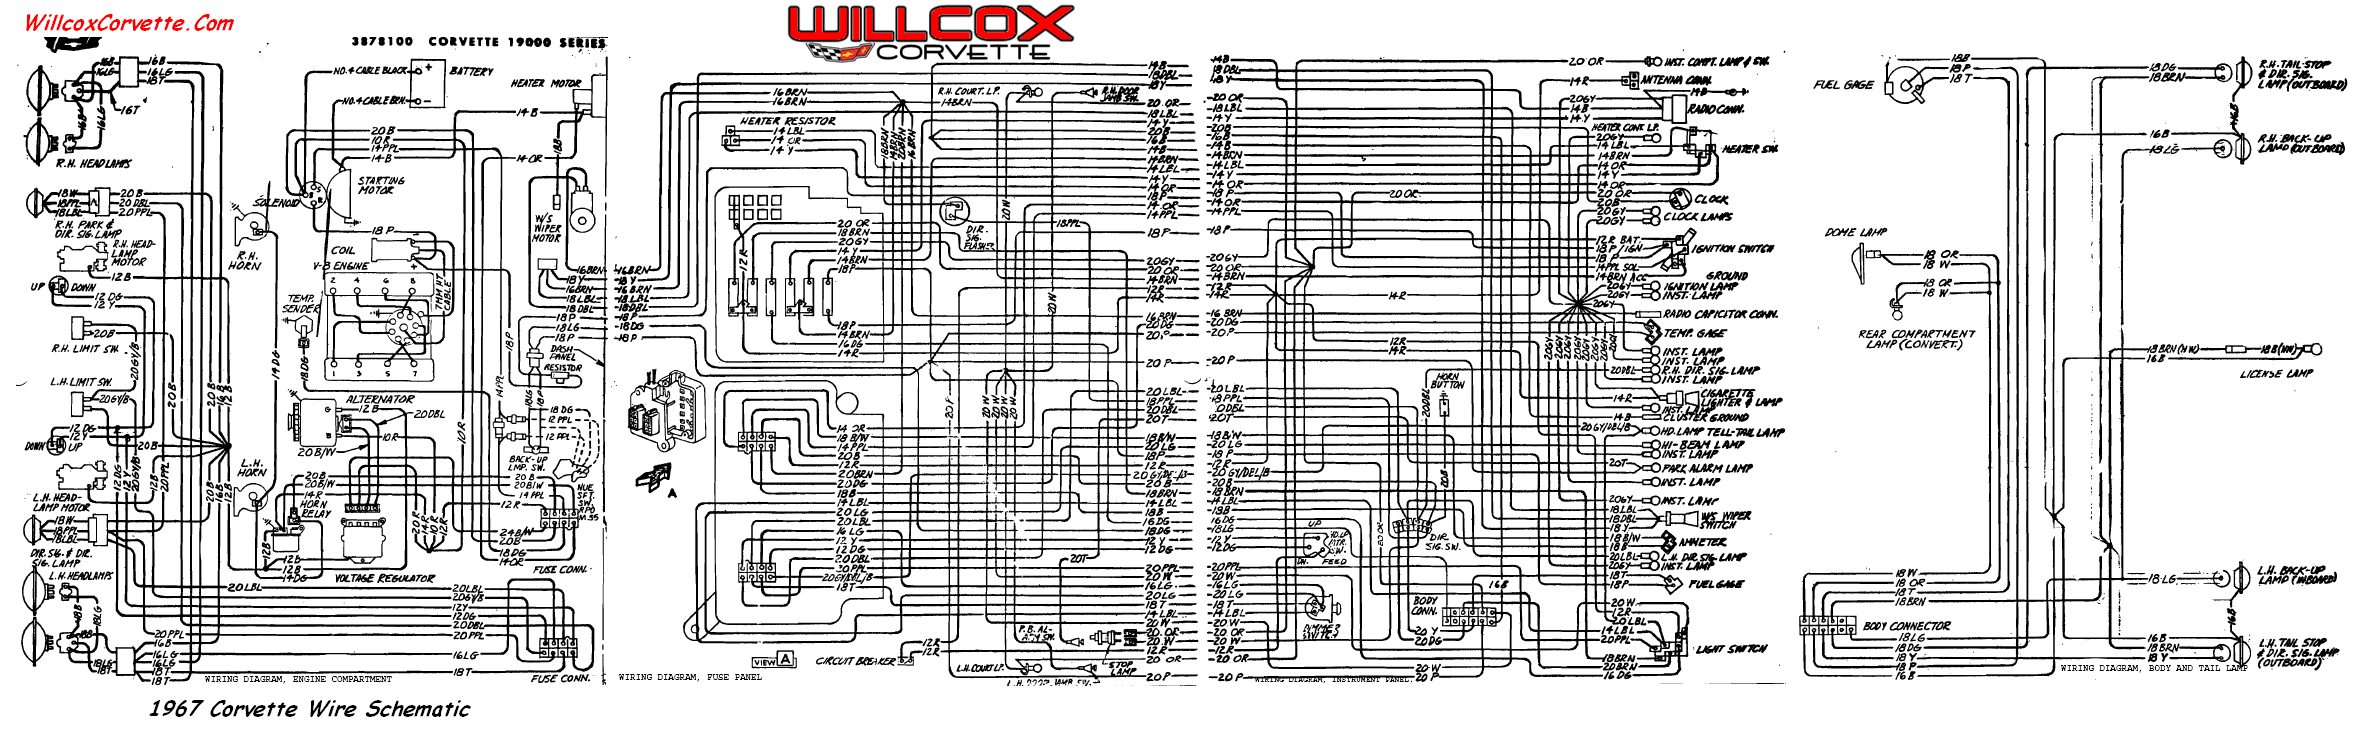 67 wire schematic for tracing wires 1967 corvette wiring diagram (tracer schematic) willcox corvette corvette wiring diagram at gsmportal.co